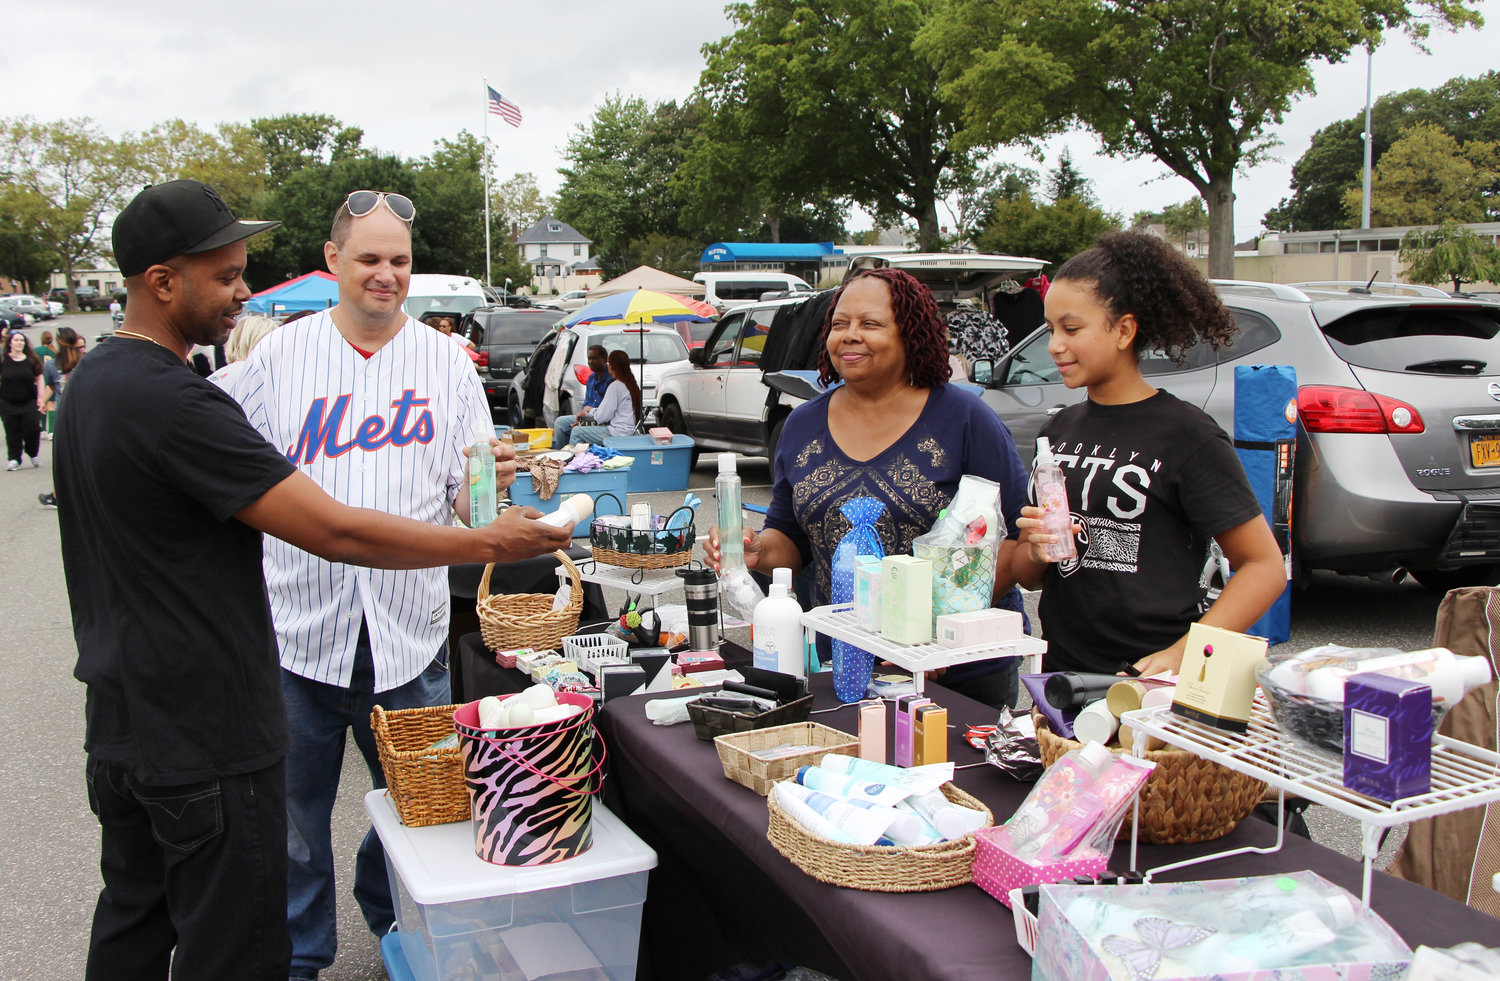 The Yard family, Kareem, Arielle and Adel, sold beauty products to Danny Samuels.